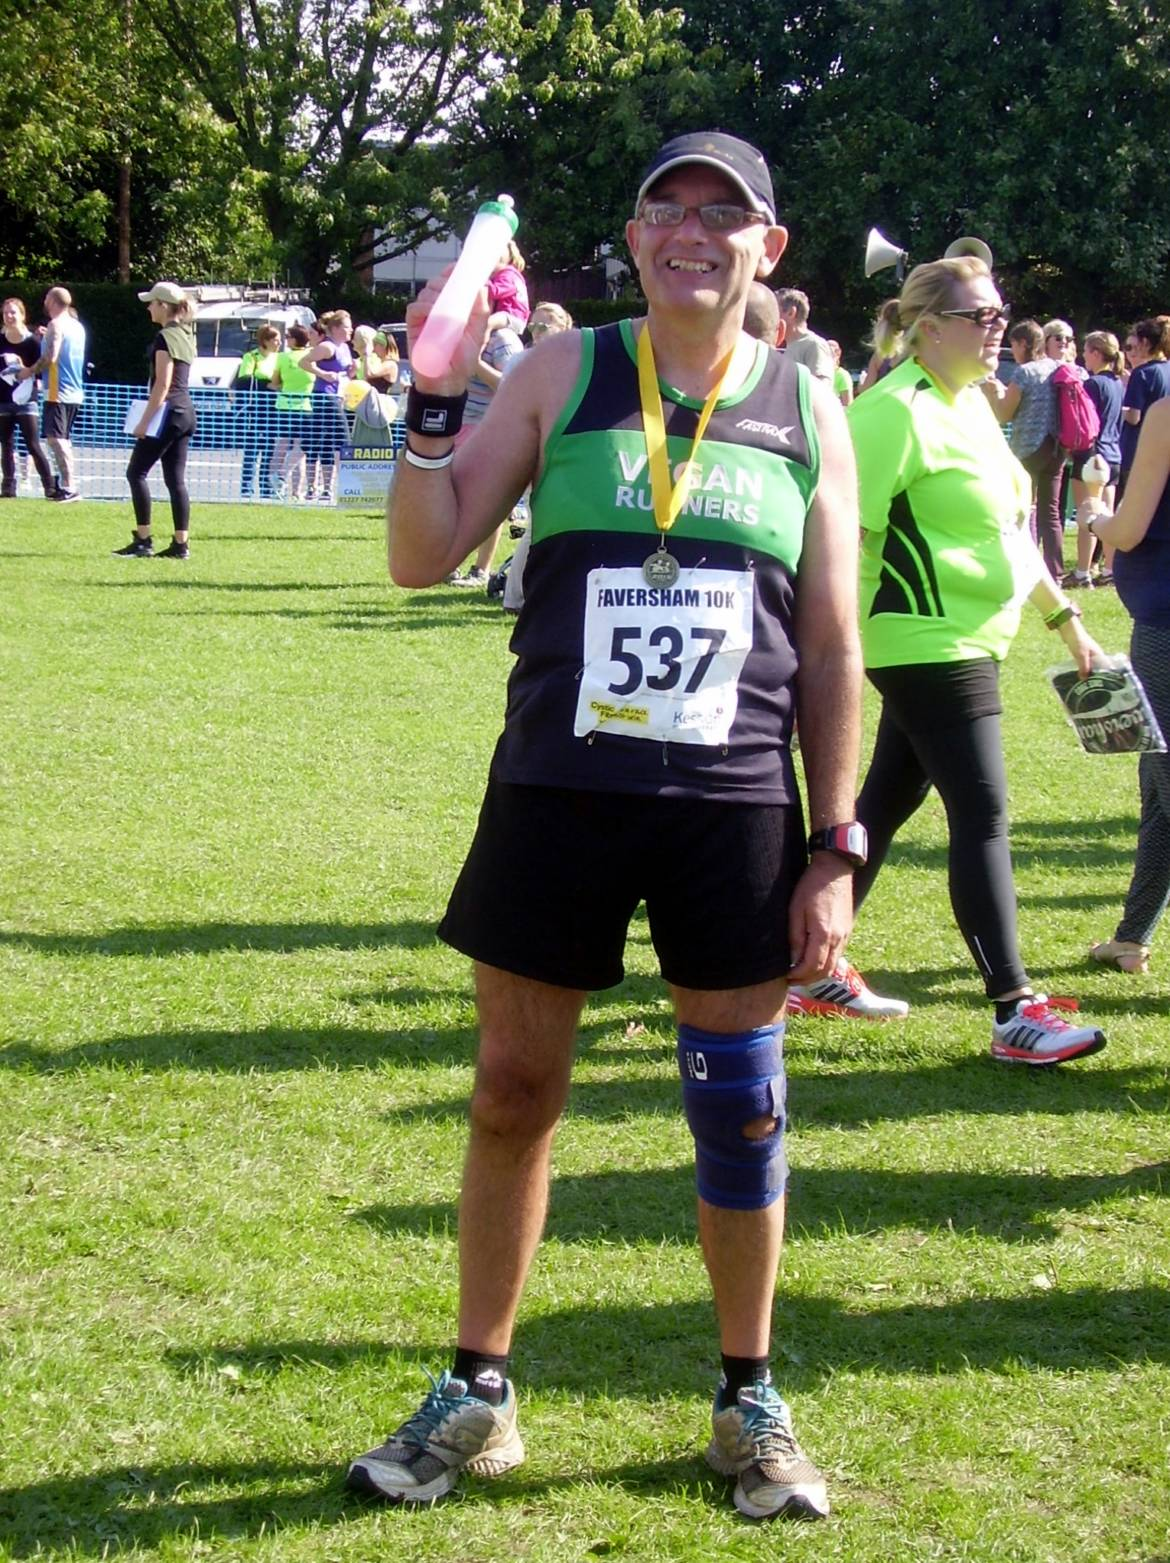 Keith-Gilbert-faversham-10k-2015-b-500x668.jpg